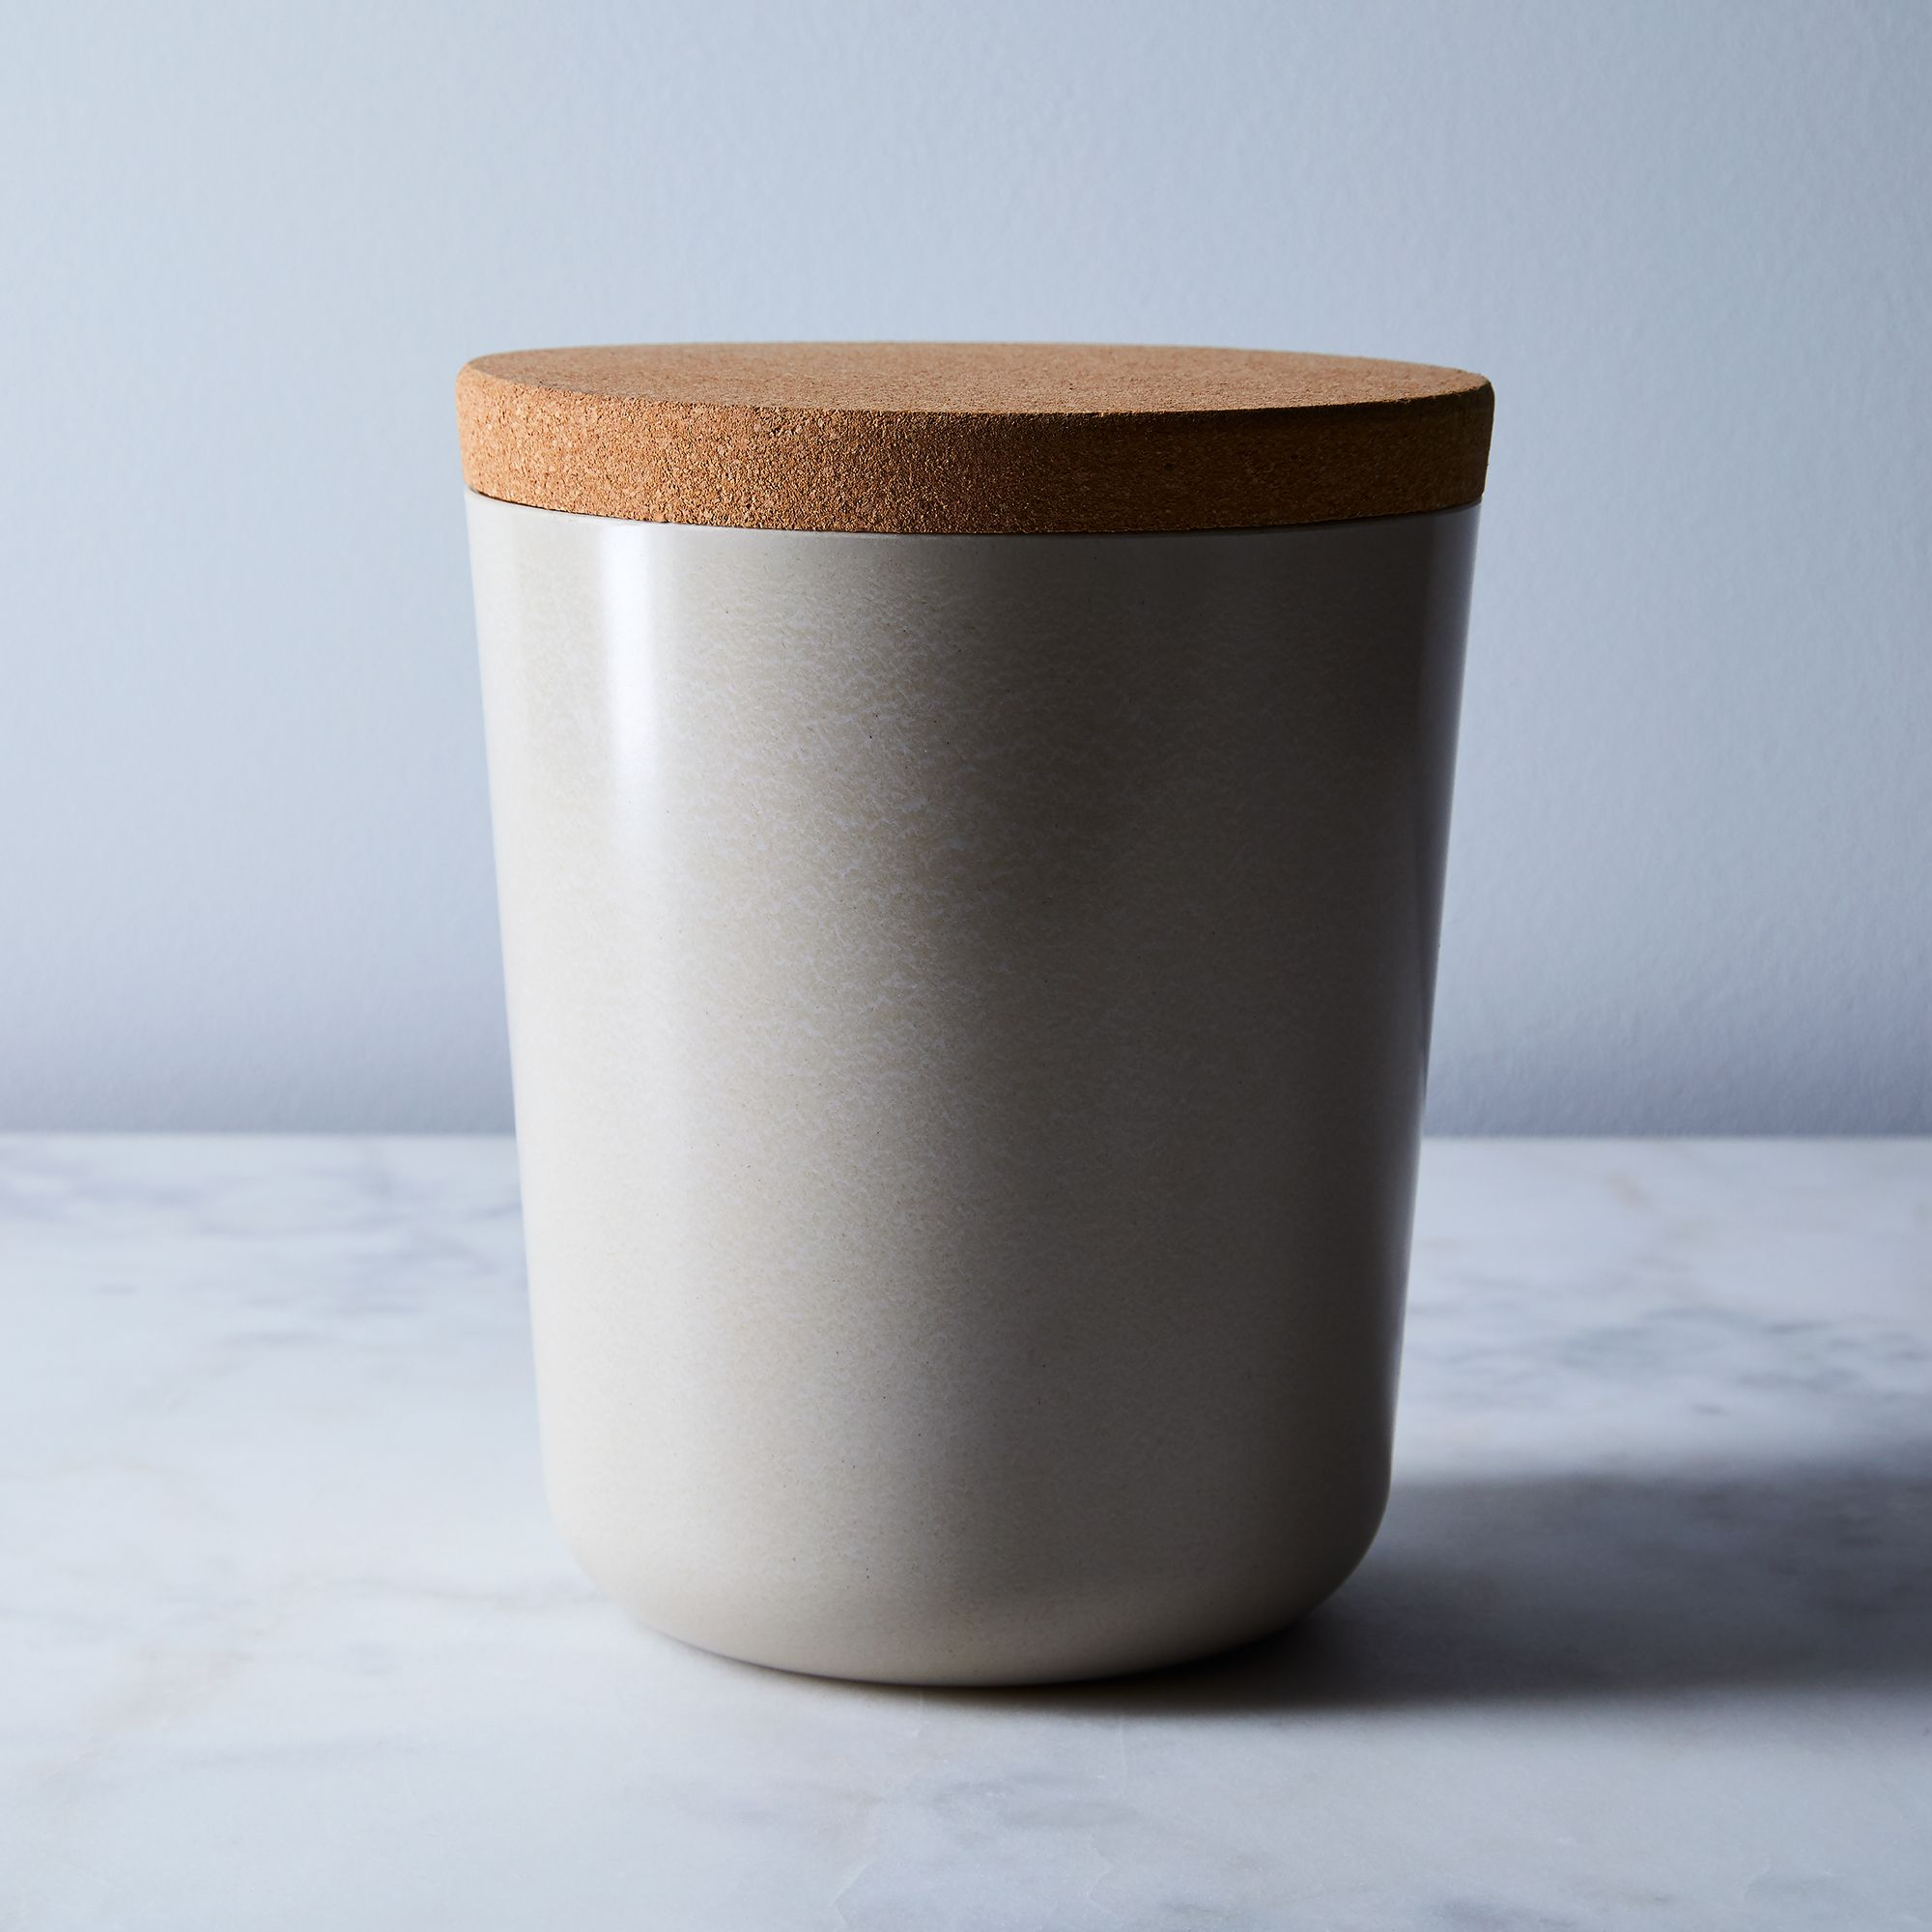 24e709d9 bca4 4d28 85a5 e856c3722d97  2017 1208 ekobo recycled bamboo canisters stone large silo ty mecham 002